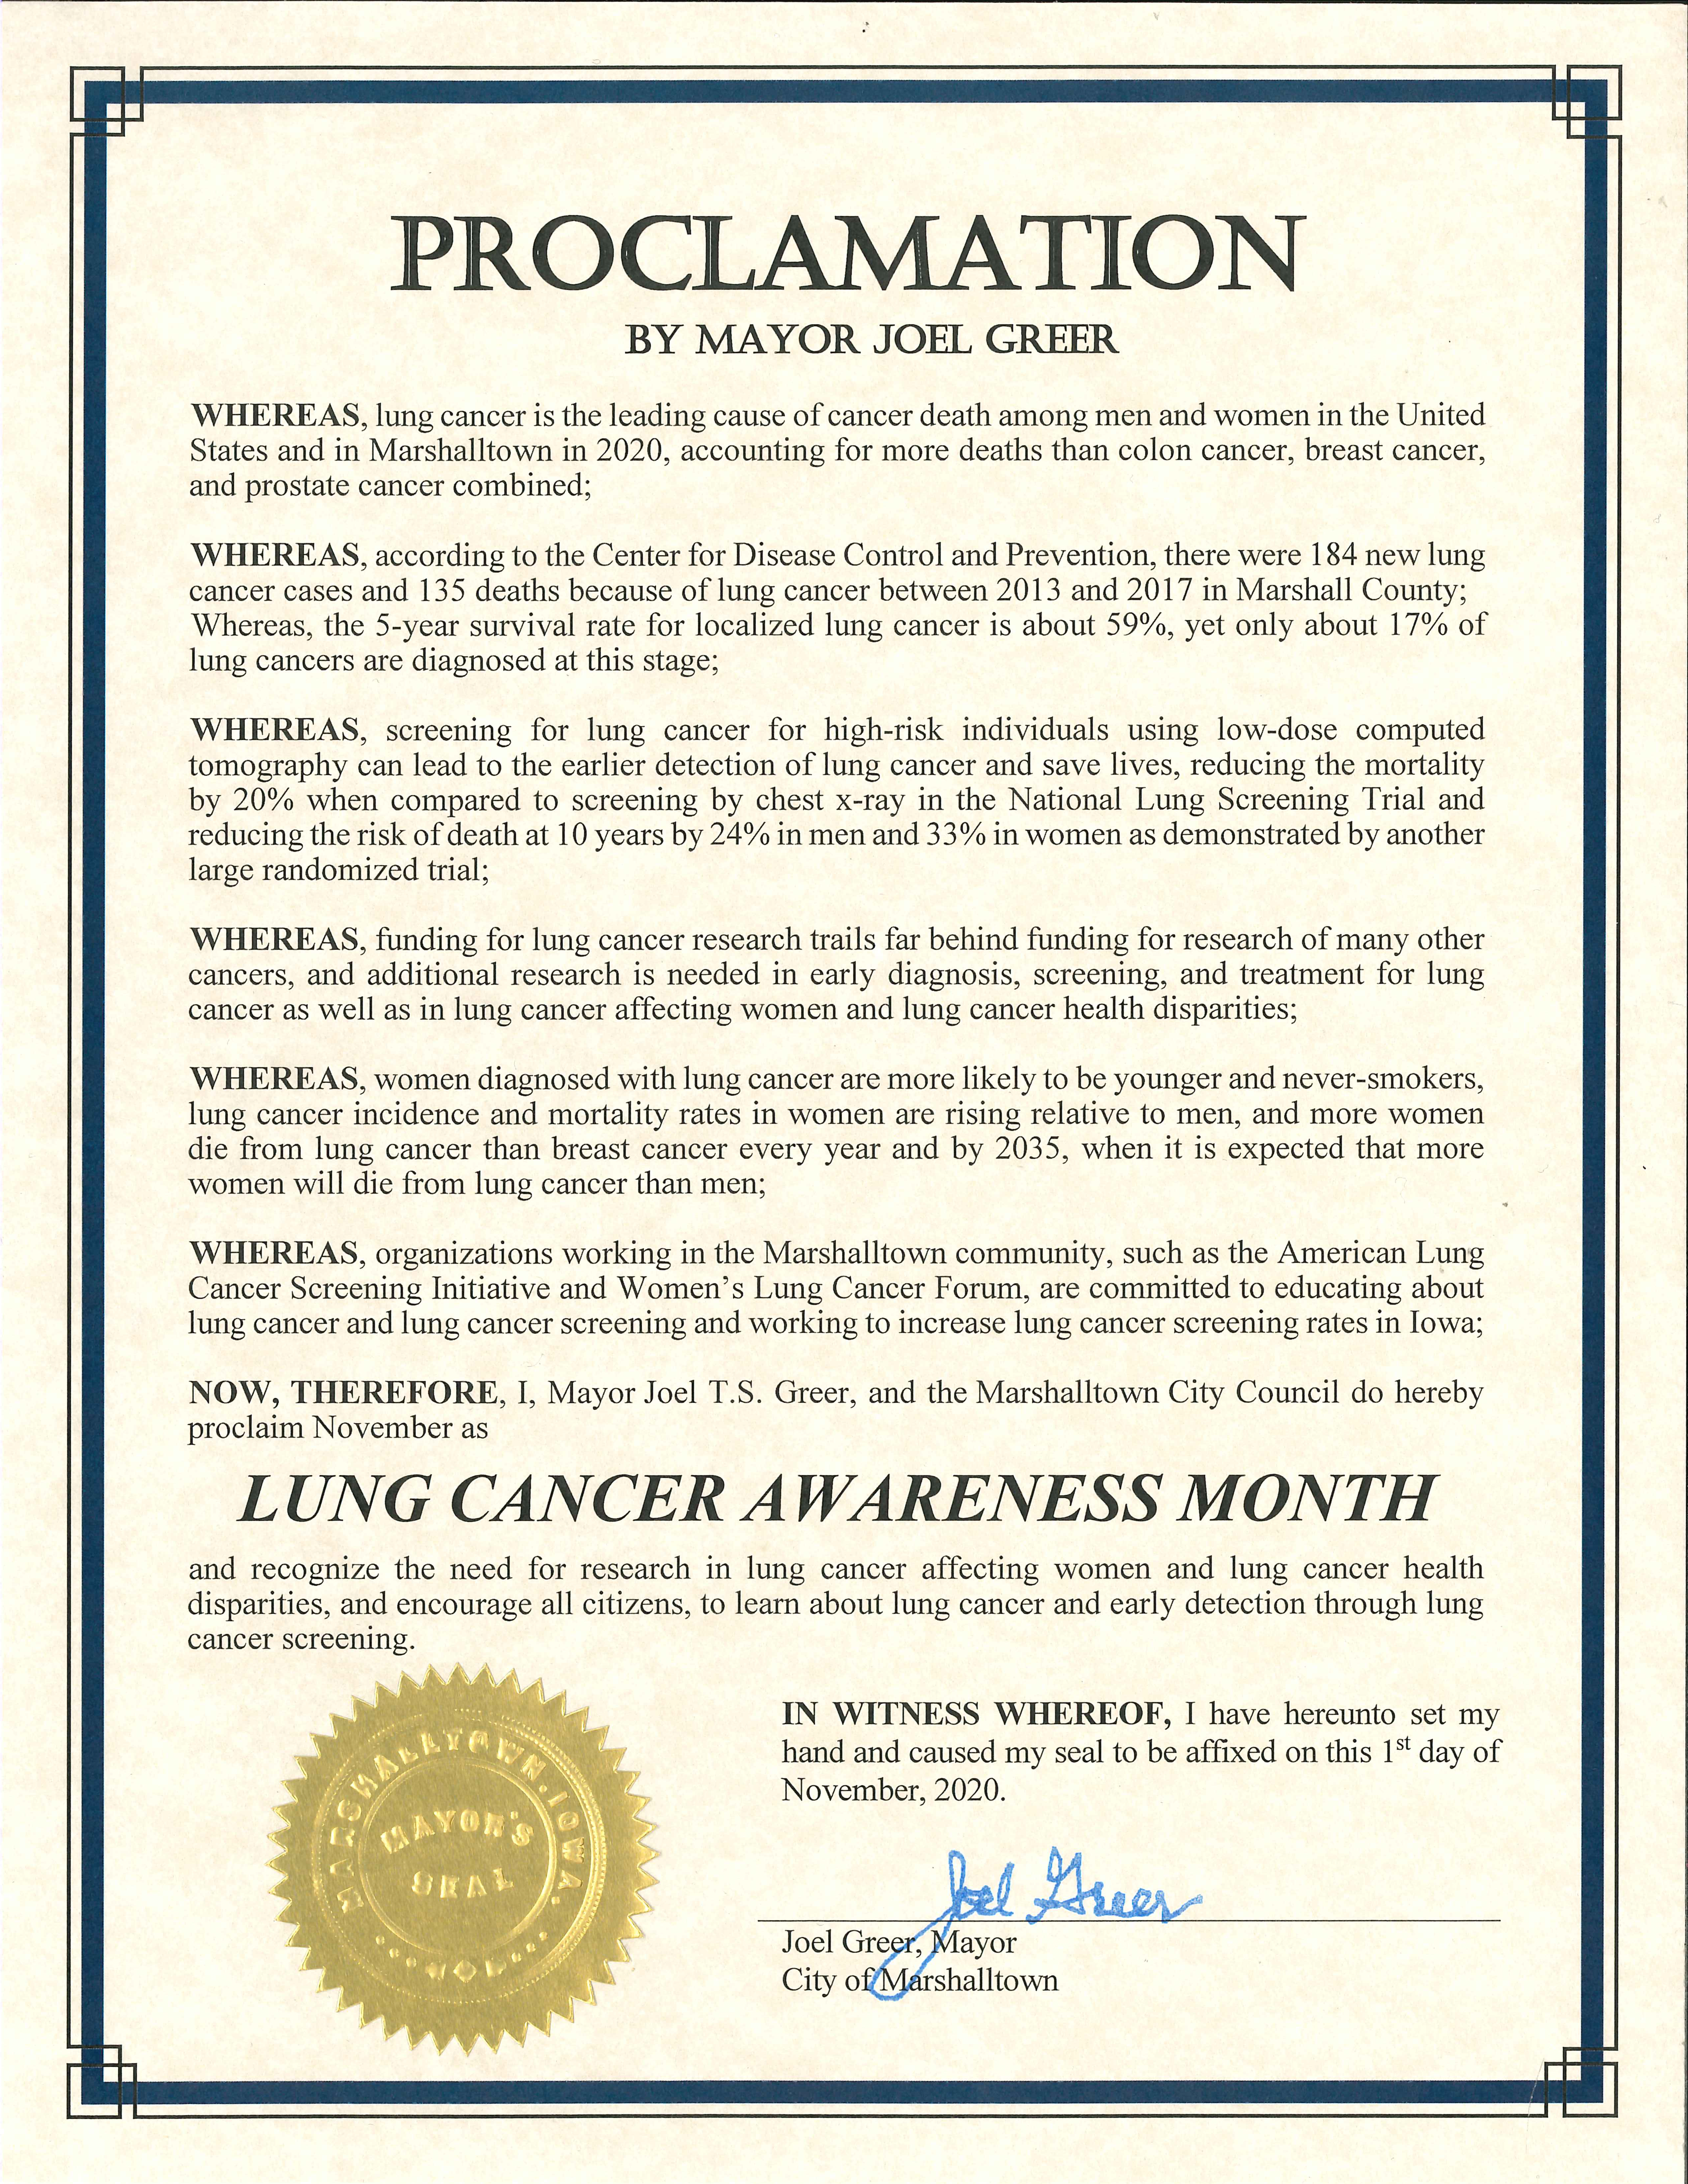 2020-11-01 Lung Cancer Awareness Month